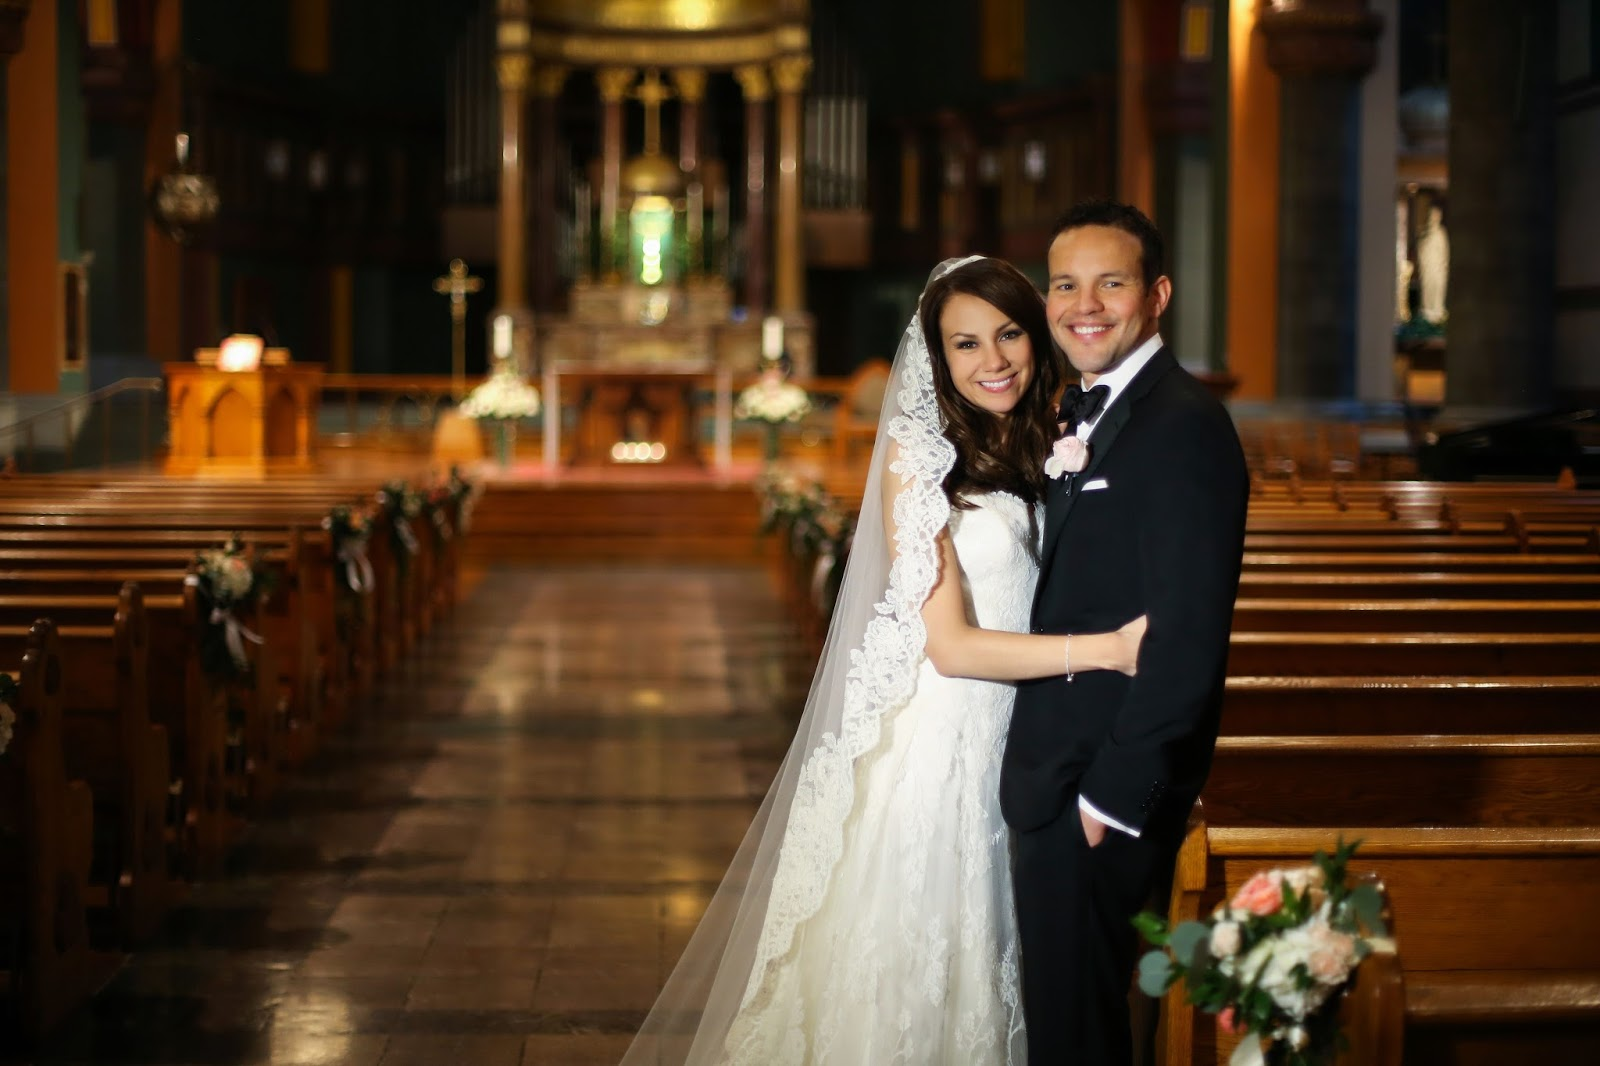 In A Catholic Wedding Program The Bride And Groom Cannot Be Indicating To Guests What Is Hening Every Moment Of That Why It